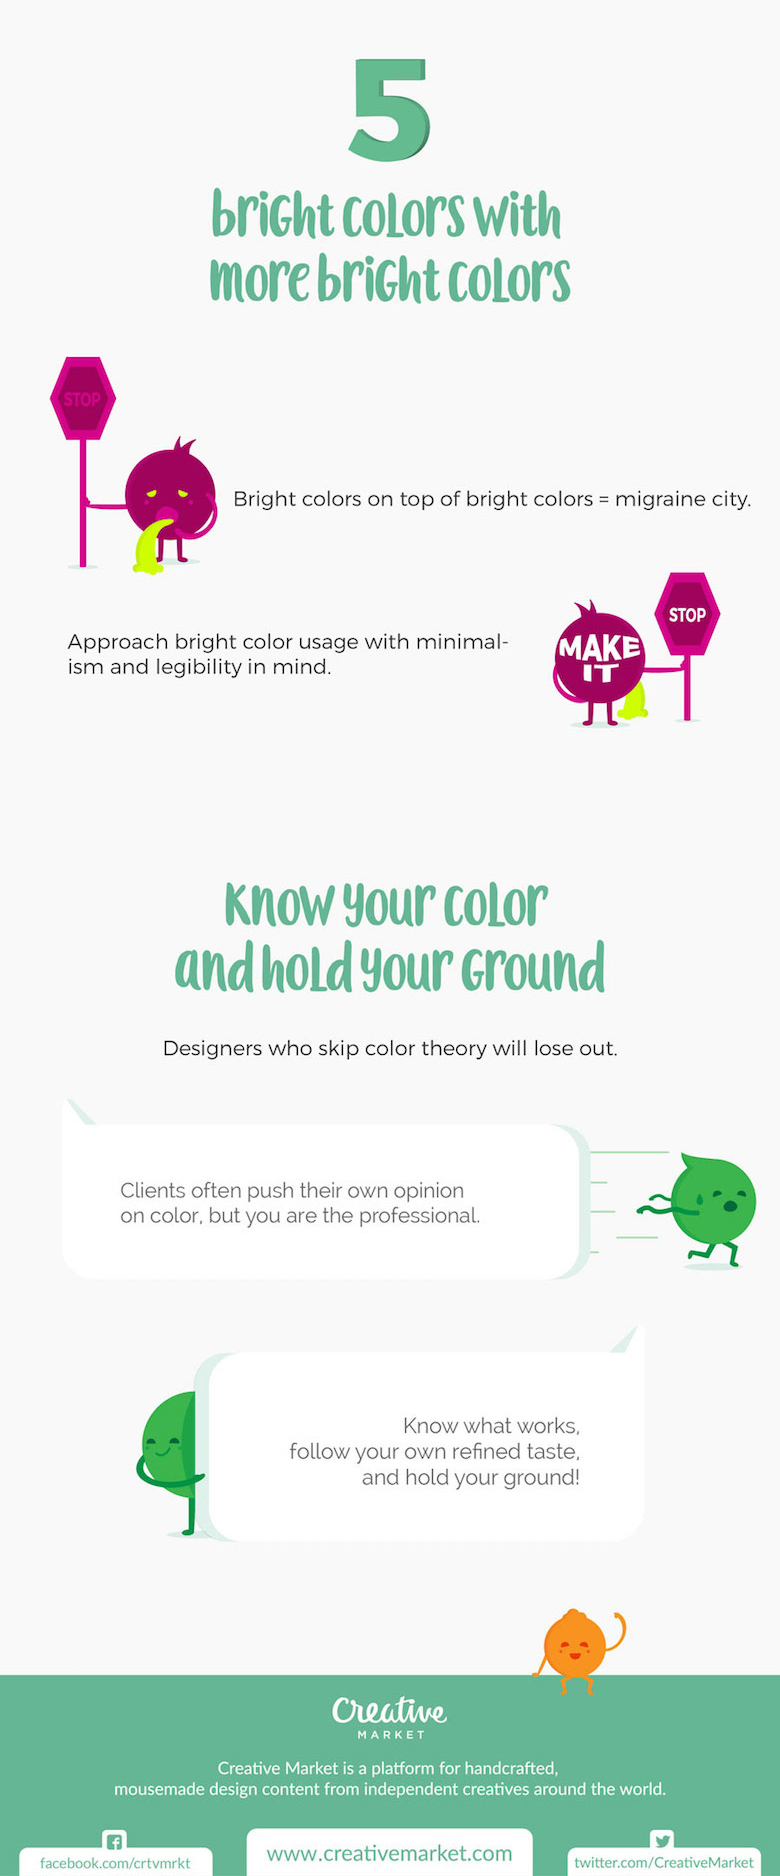 Color choices to avoid update - green